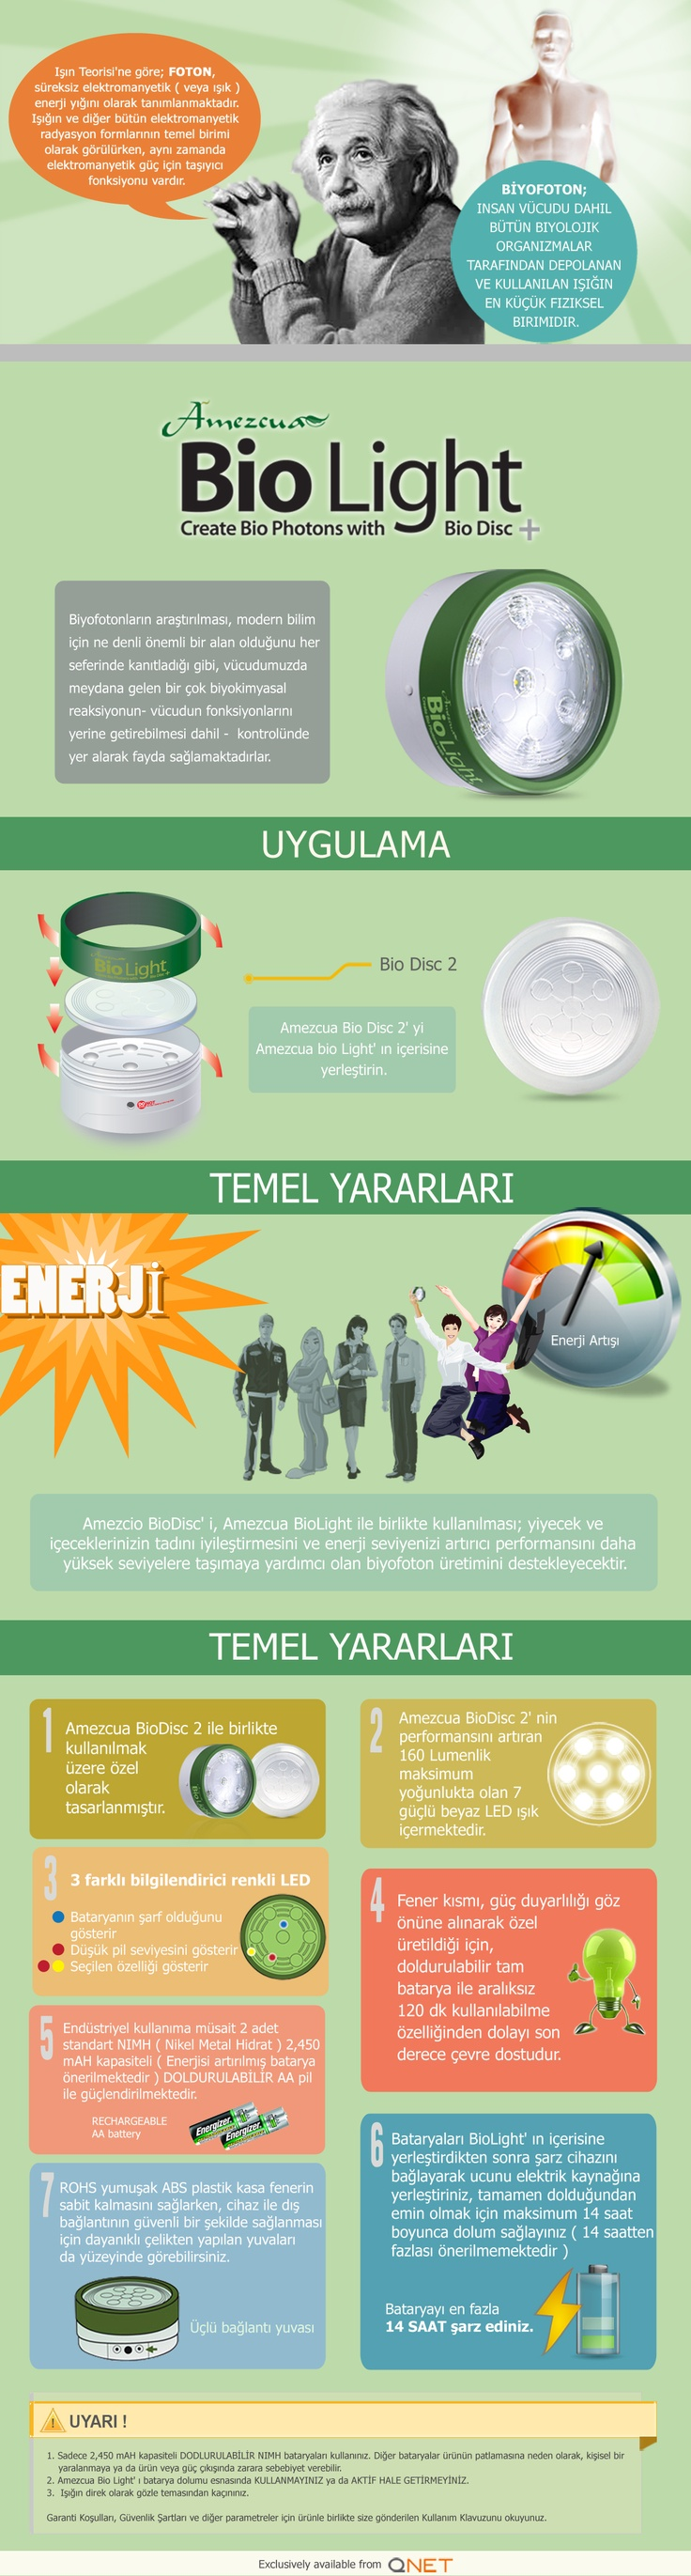 Amezcua Bio Light: Shine Your Way to Good Health! (Turkish)